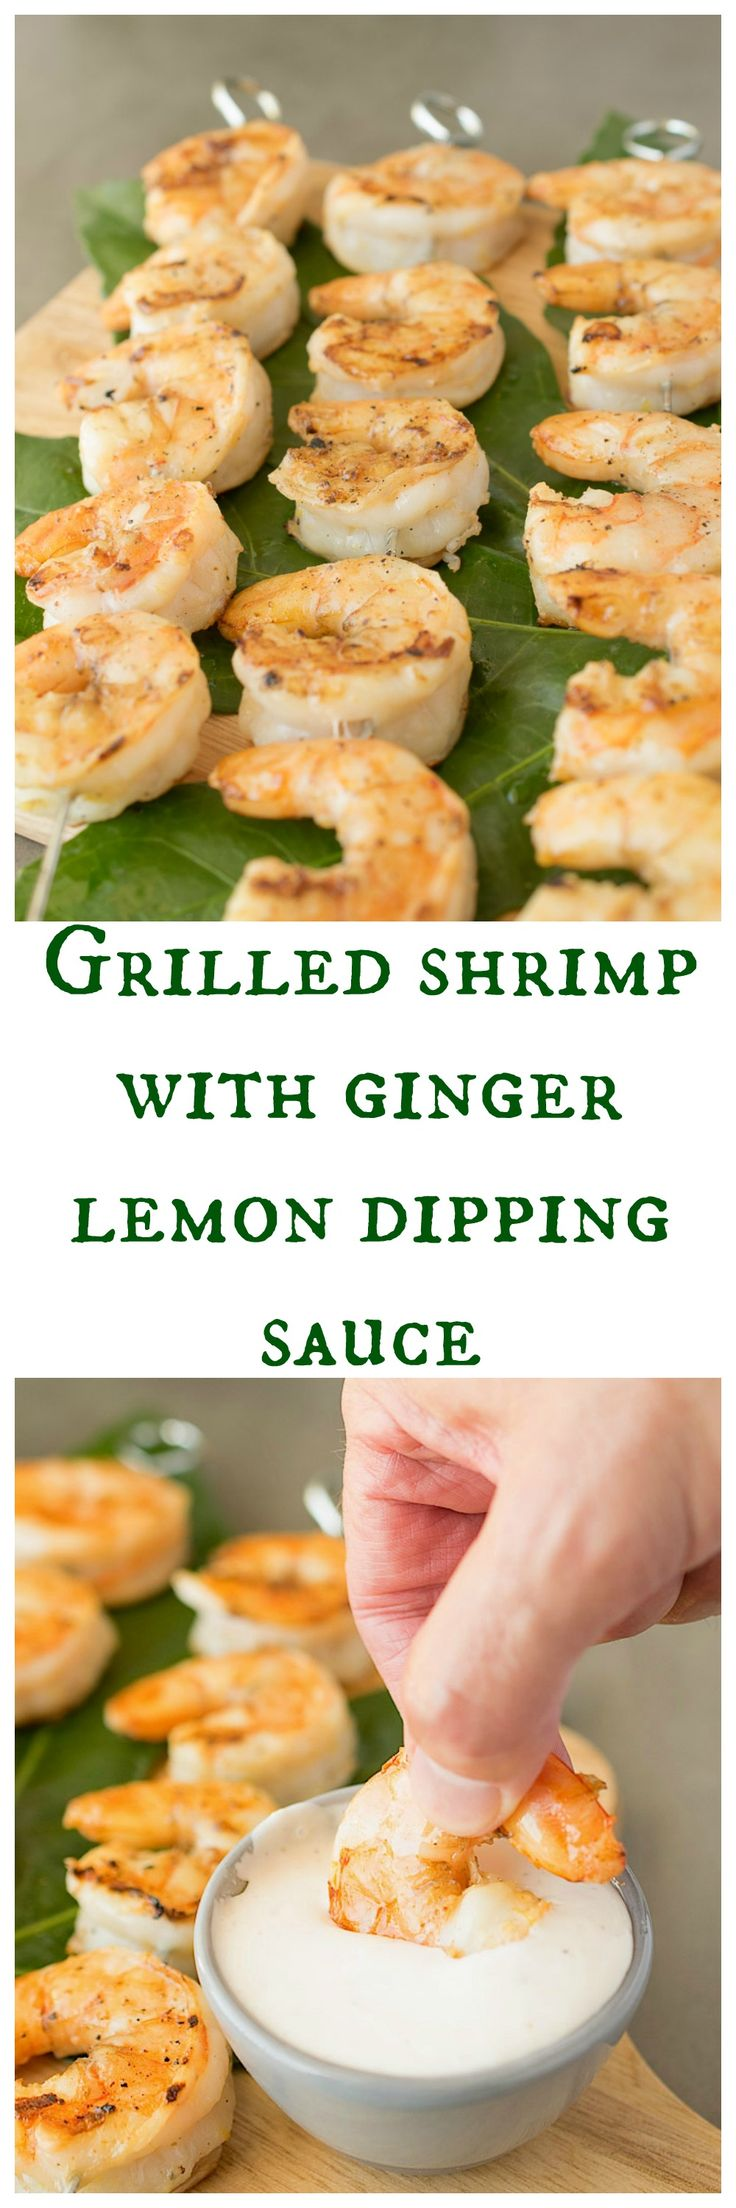 Grilled shrimp with ginger lemon dipping sauce. A quick and easy appetizer or add  to a main dish.